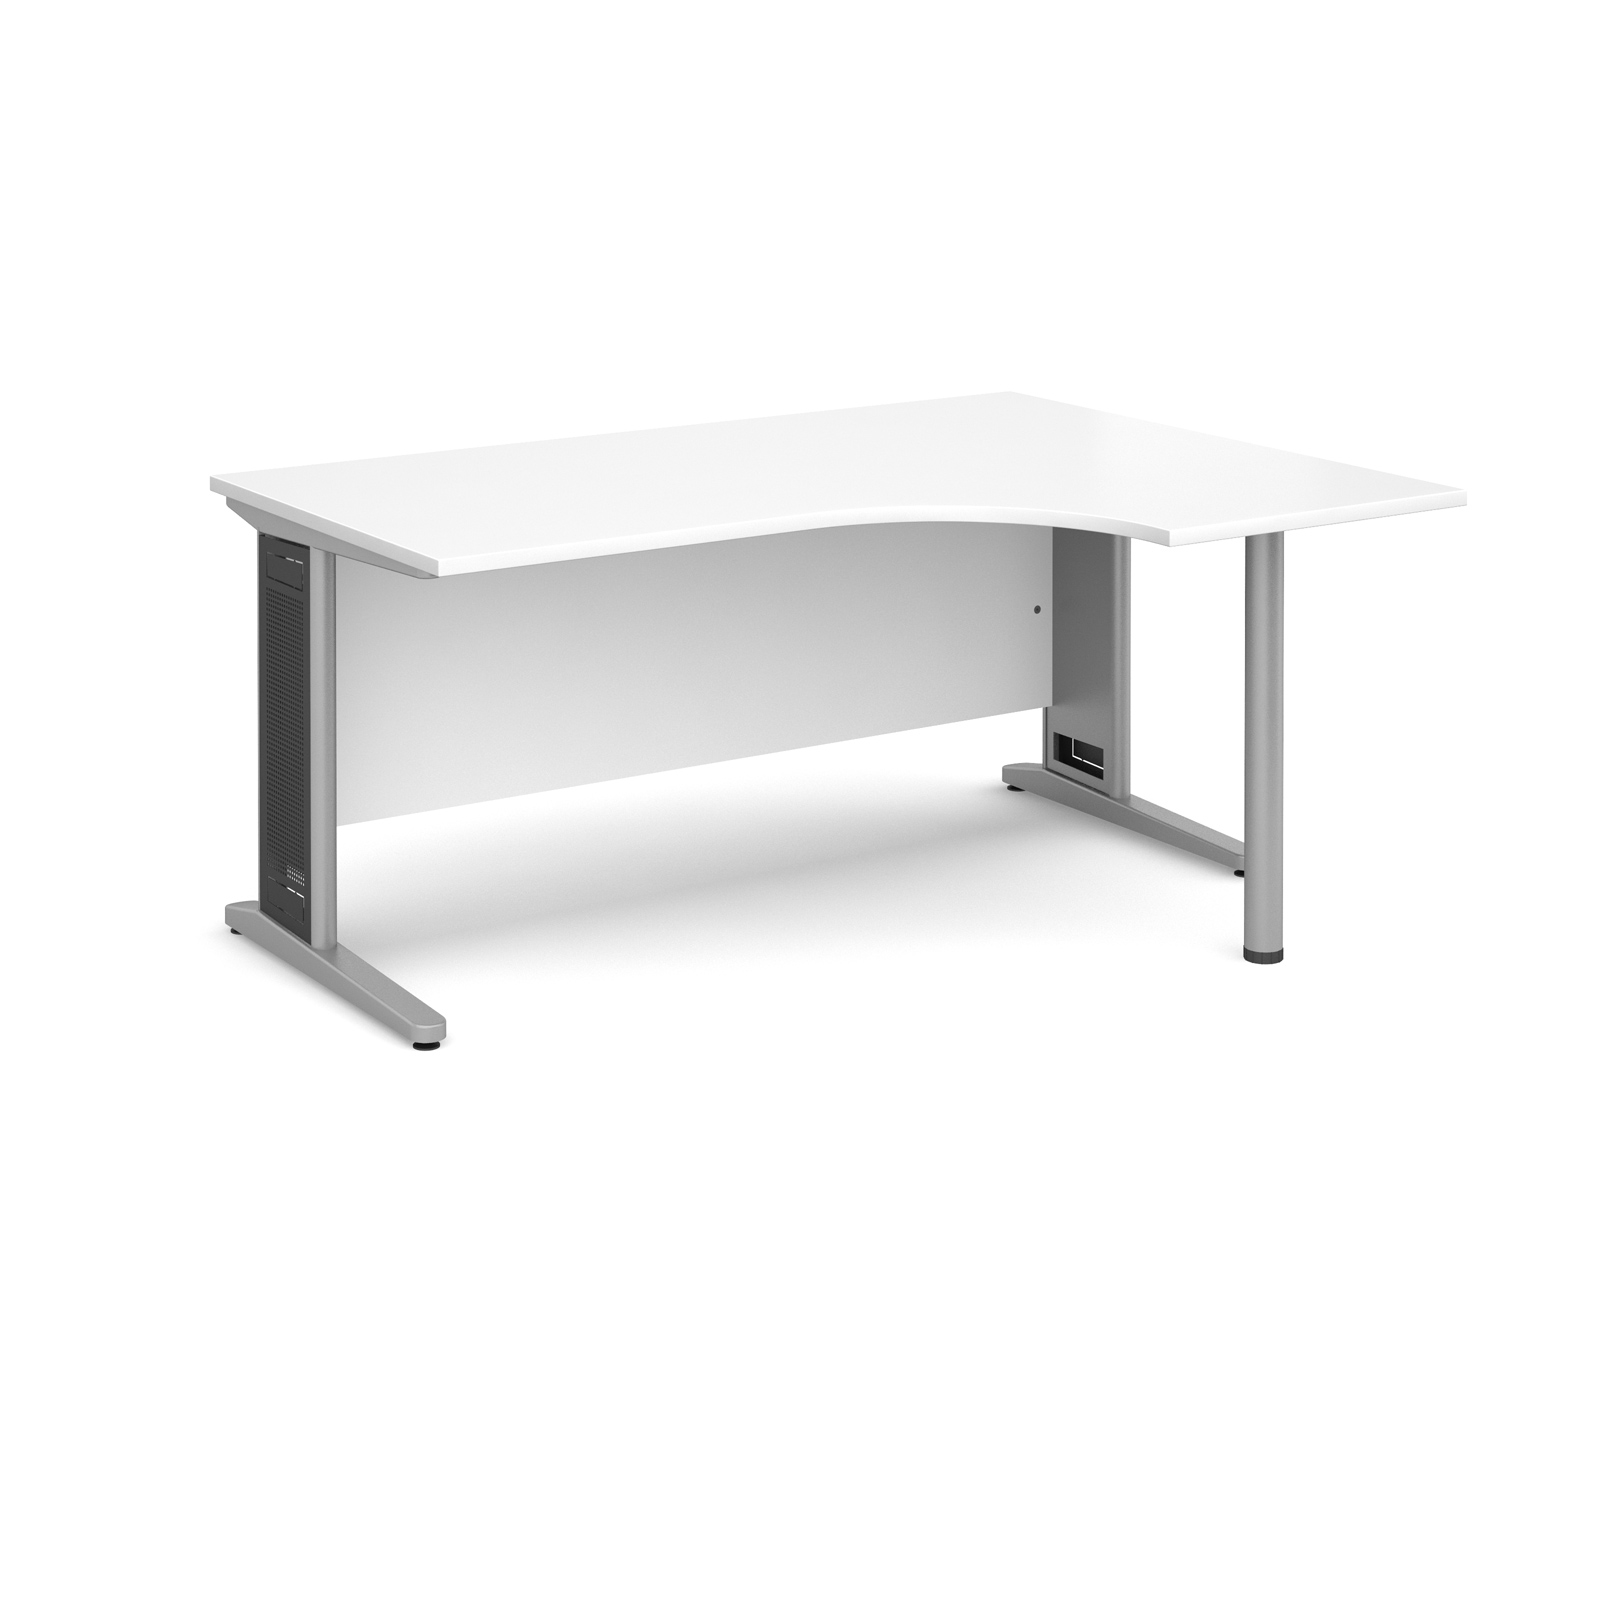 Largo right hand ergonomic desk 1600mm - silver cantilever frame with removable grill, white top